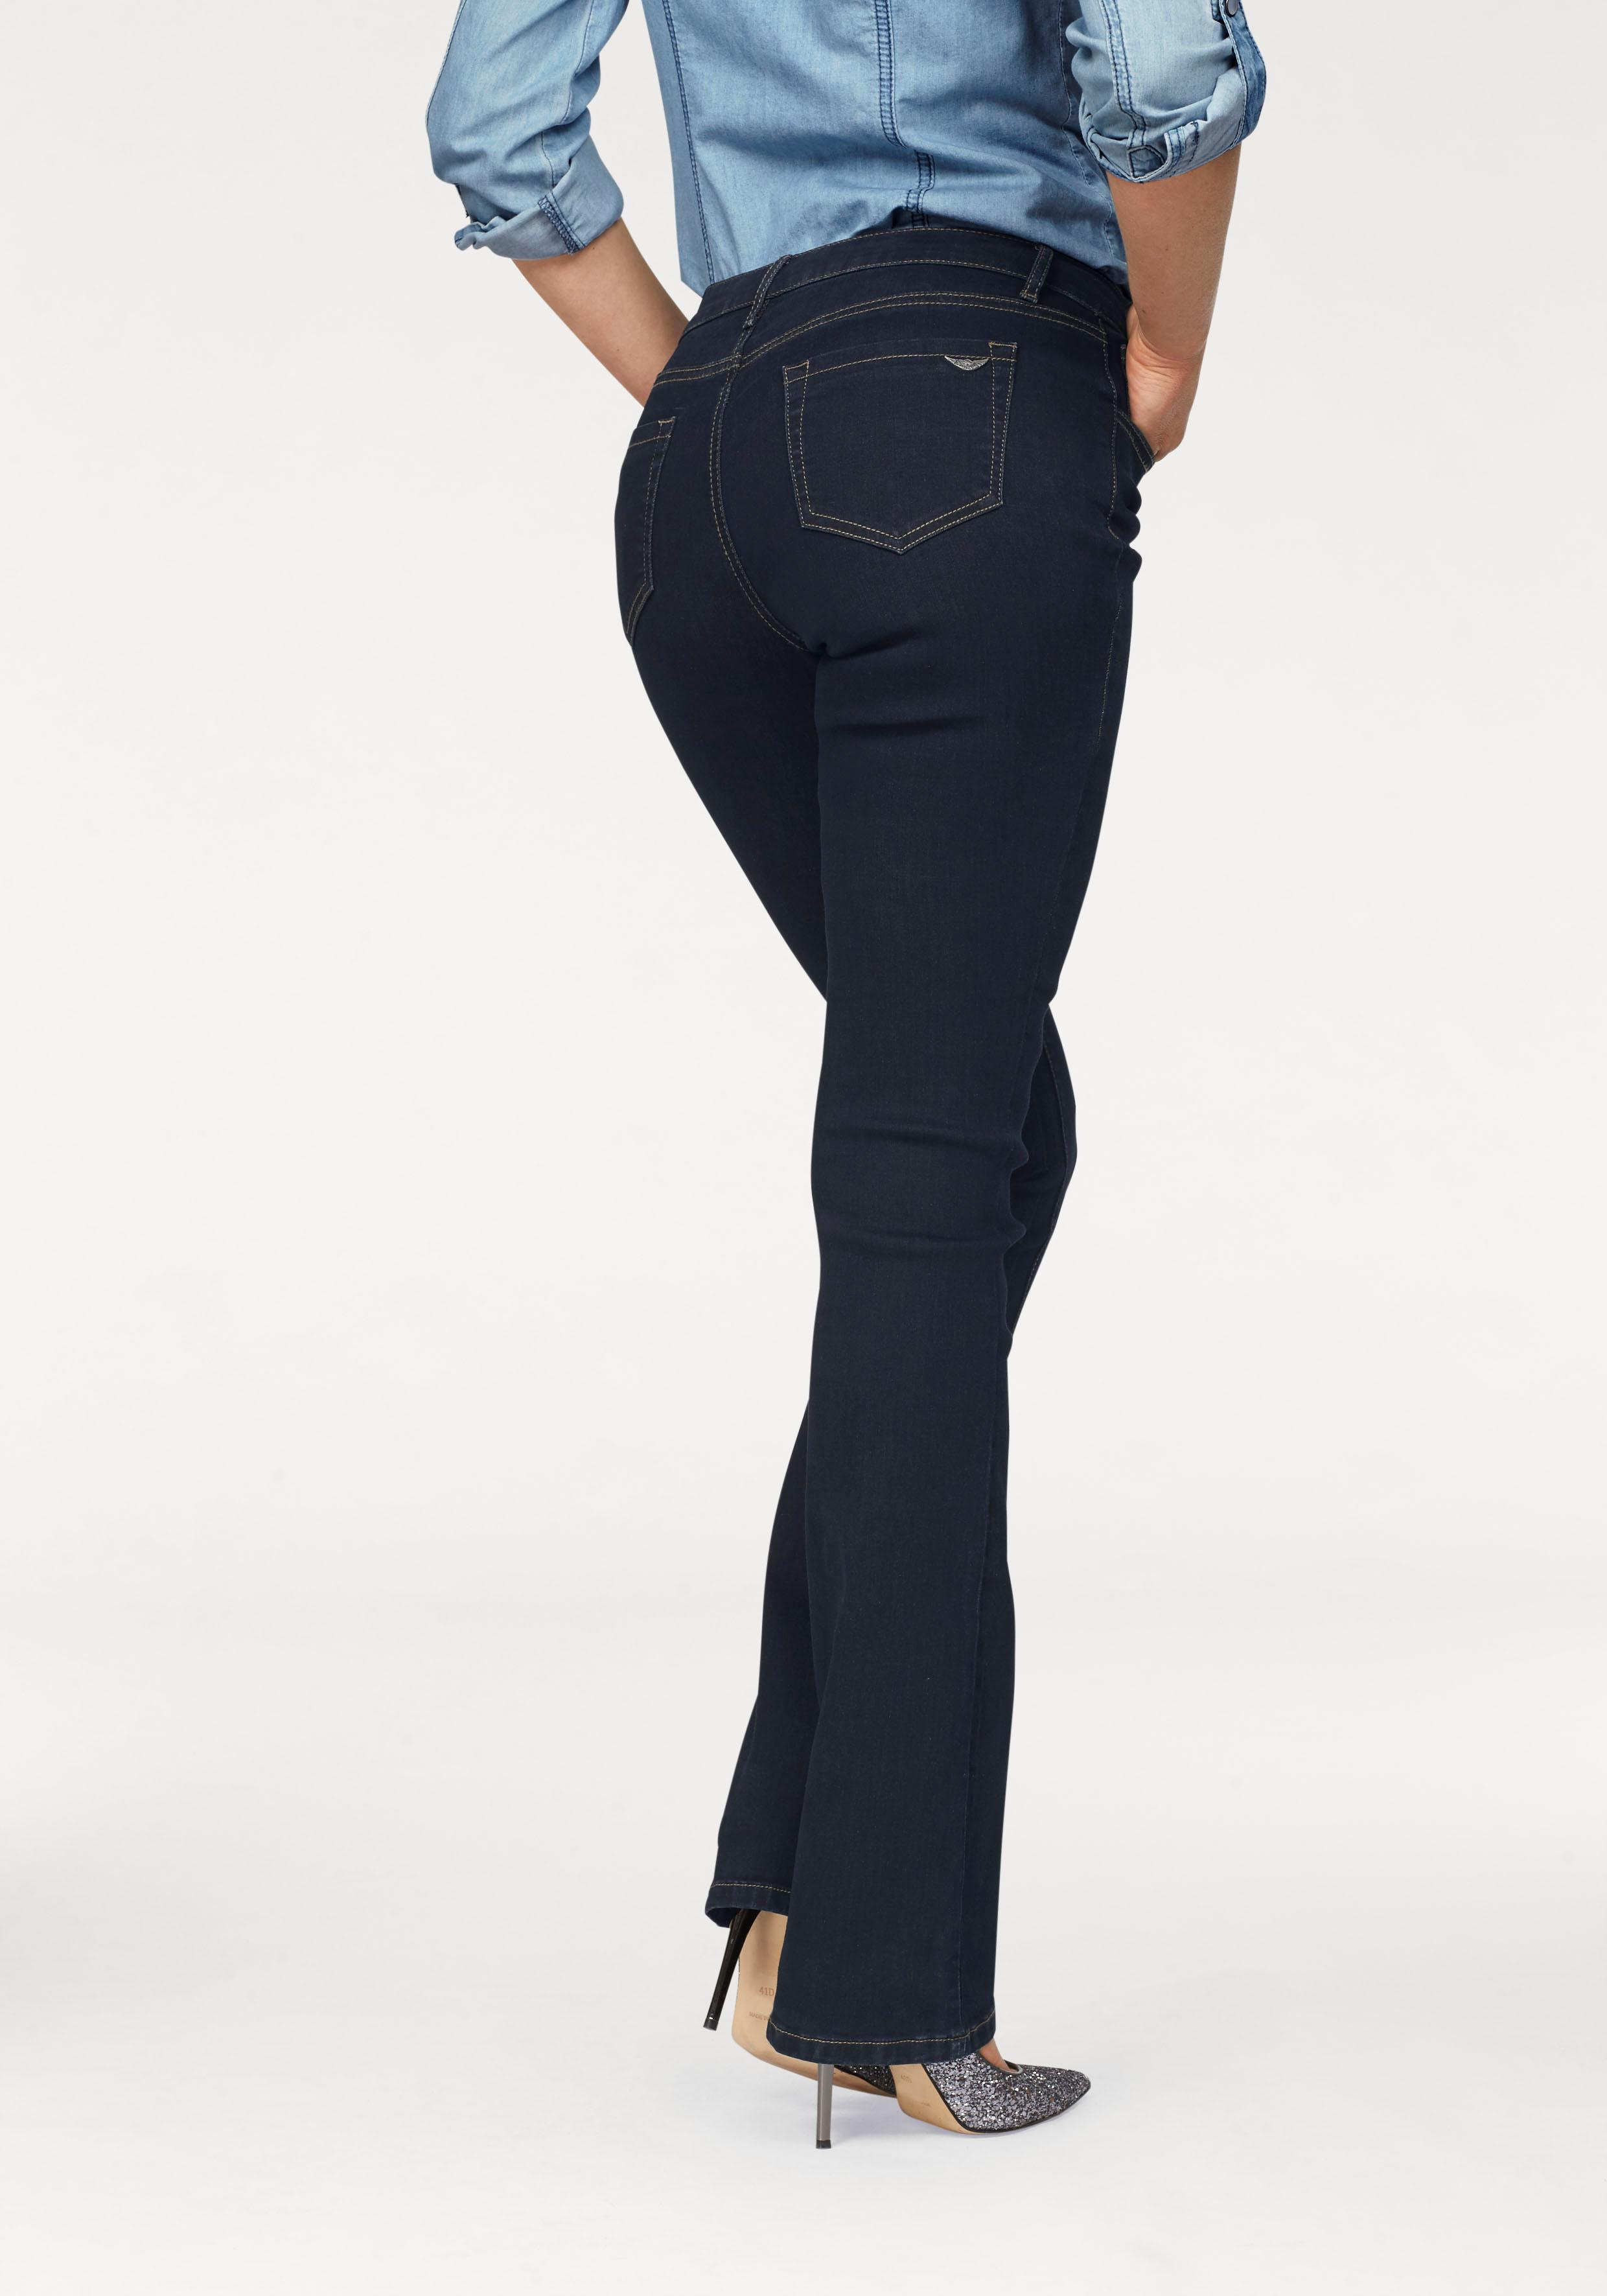 Arizona Bootcut-Jeans Ultra-Stretch | Bekleidung > Jeans > Bootcut-Jeans & Schlagjeans | Arizona